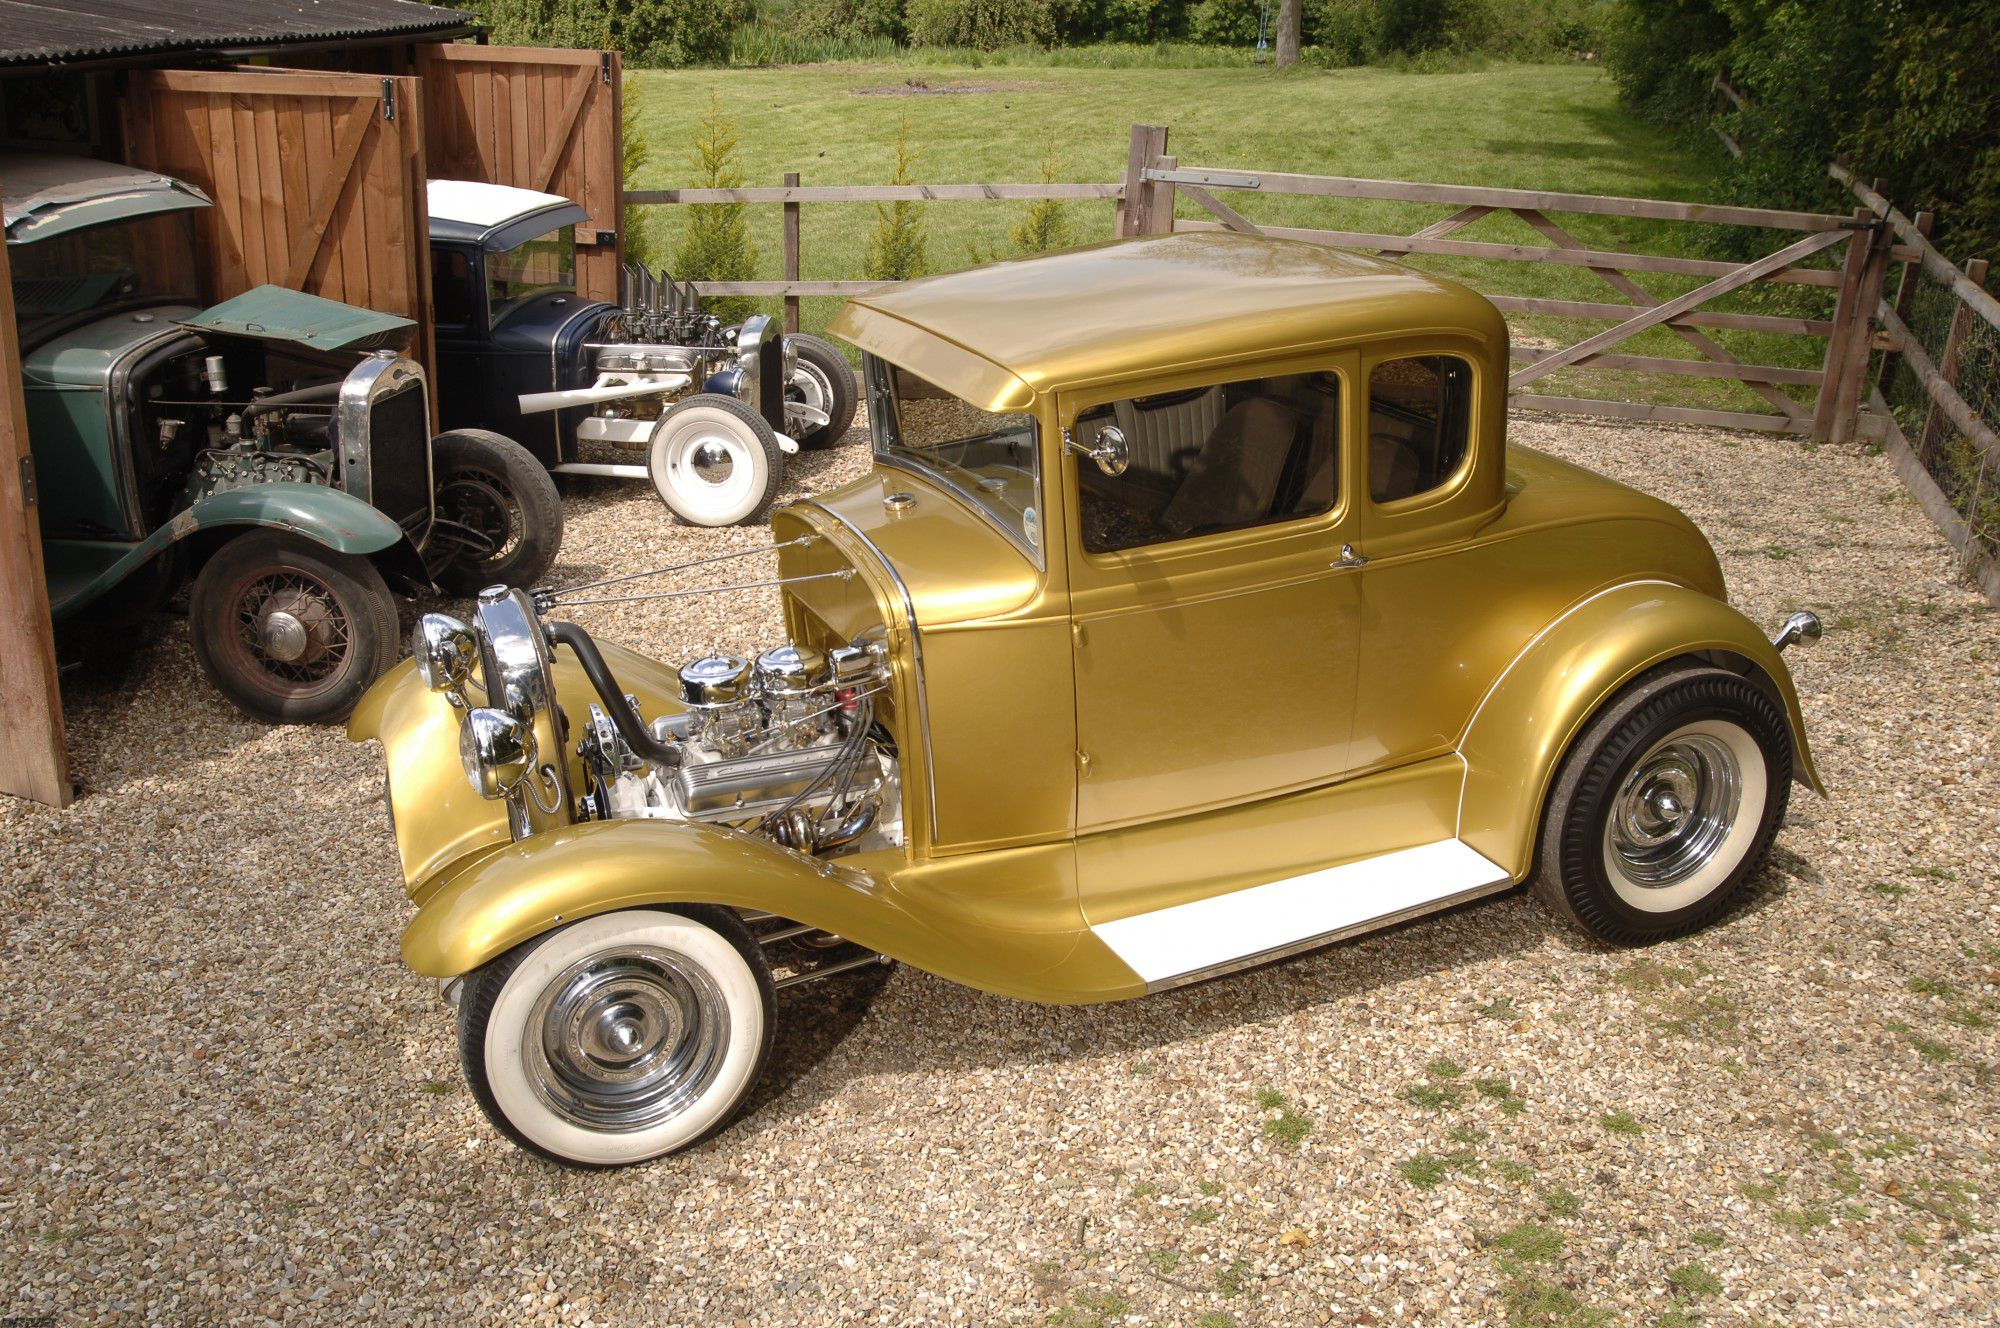 UK Model A: An American Hot Rod in England